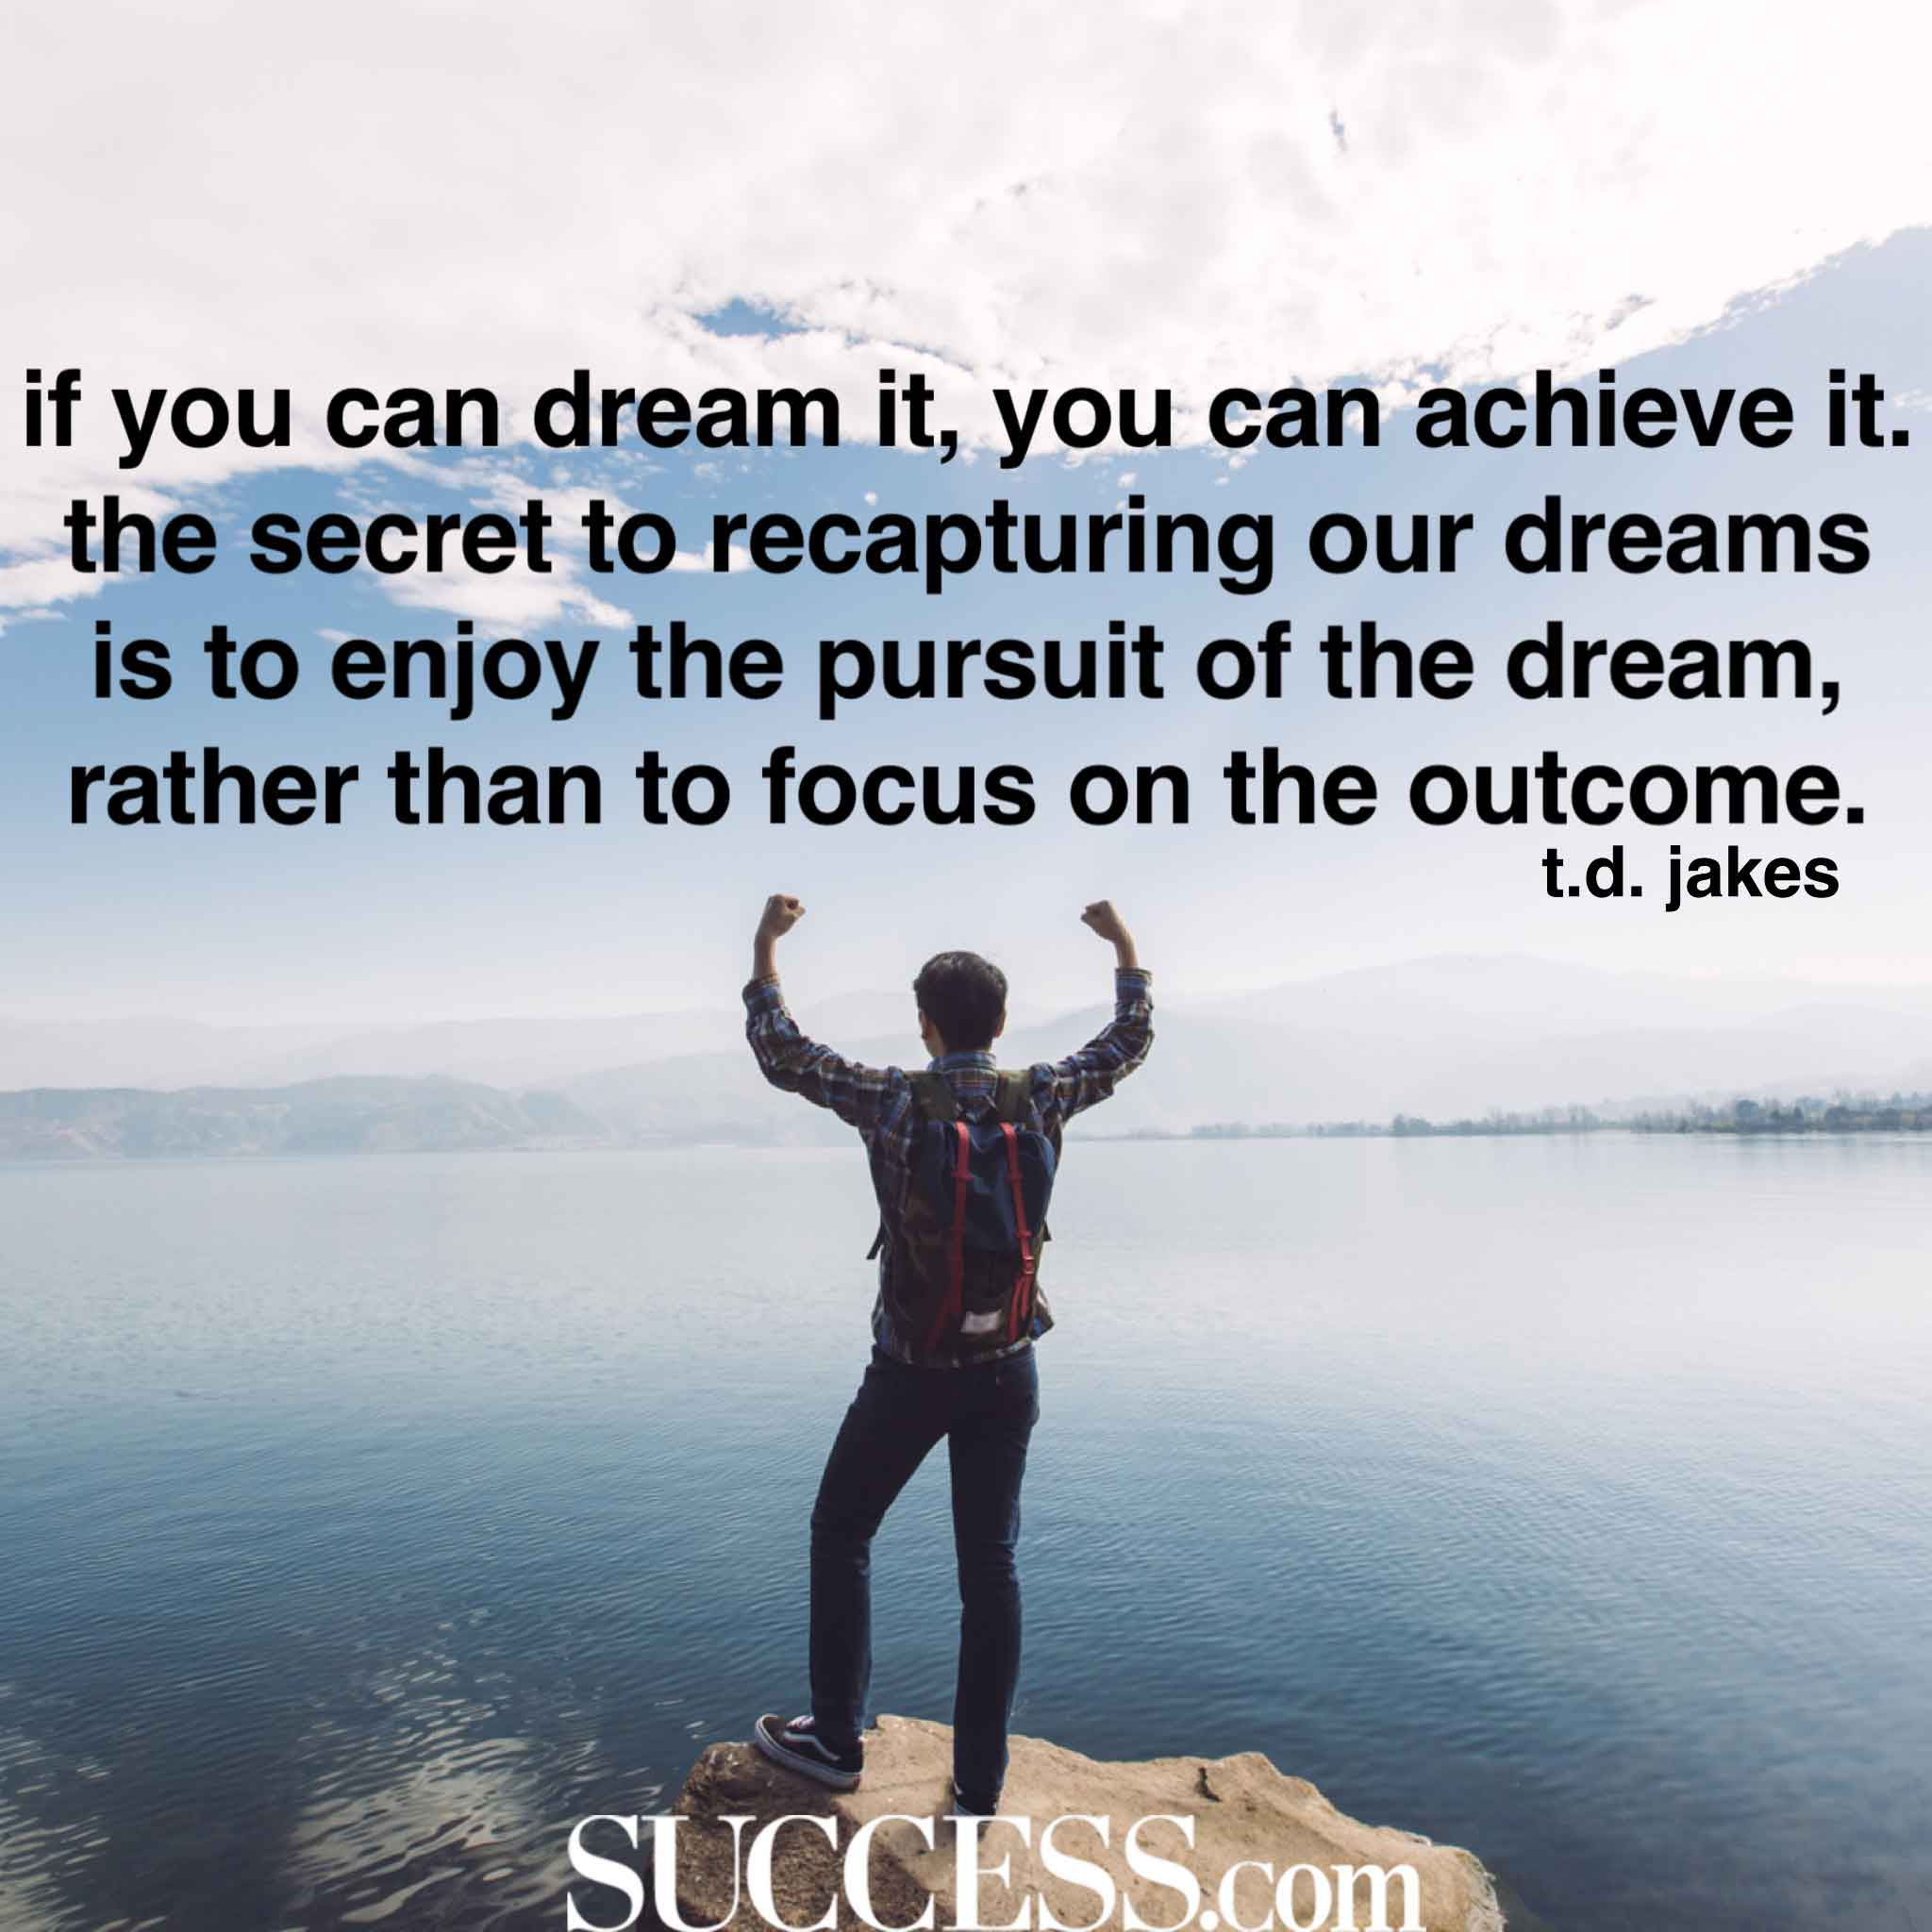 17 Powerful T.D. Jakes Quotes to Push You Forward